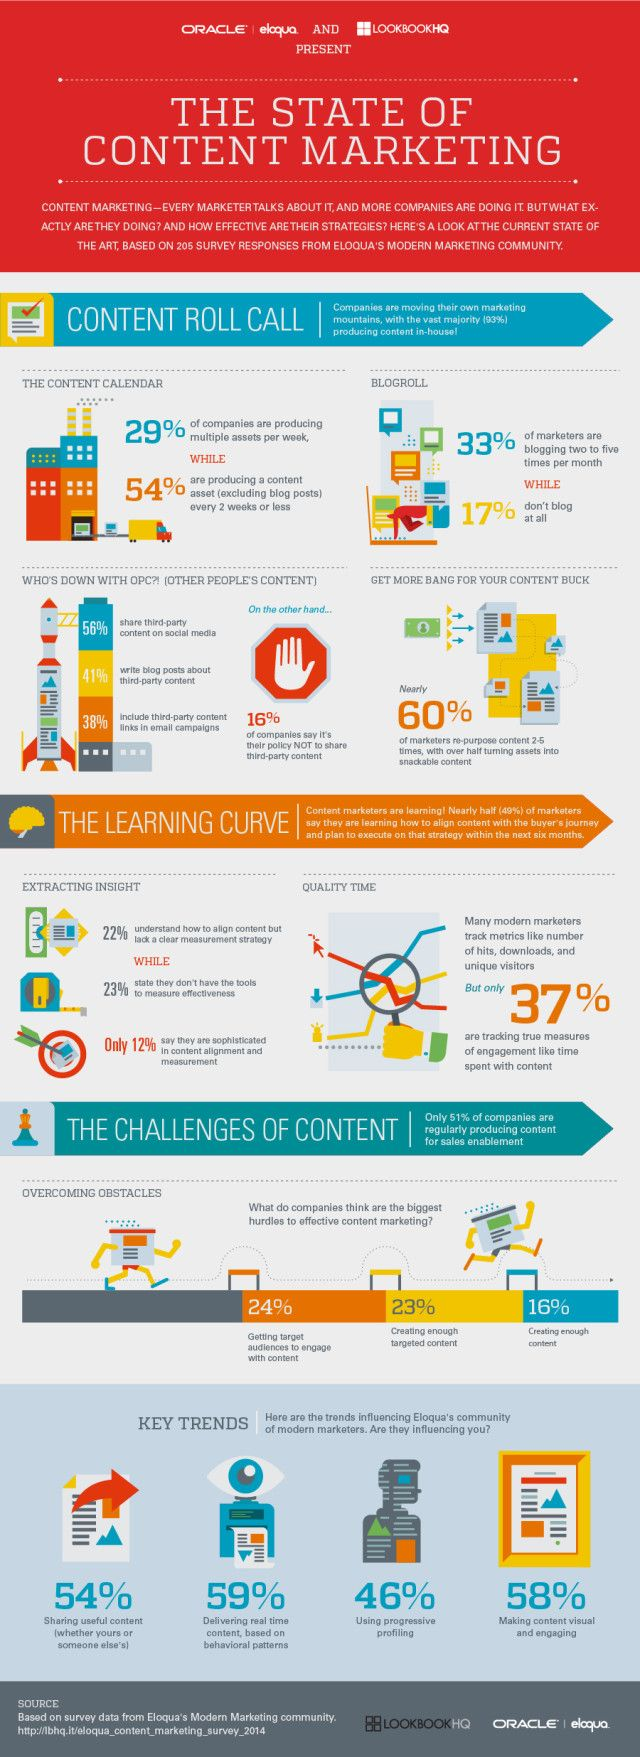 The State of Content Marketing 2014